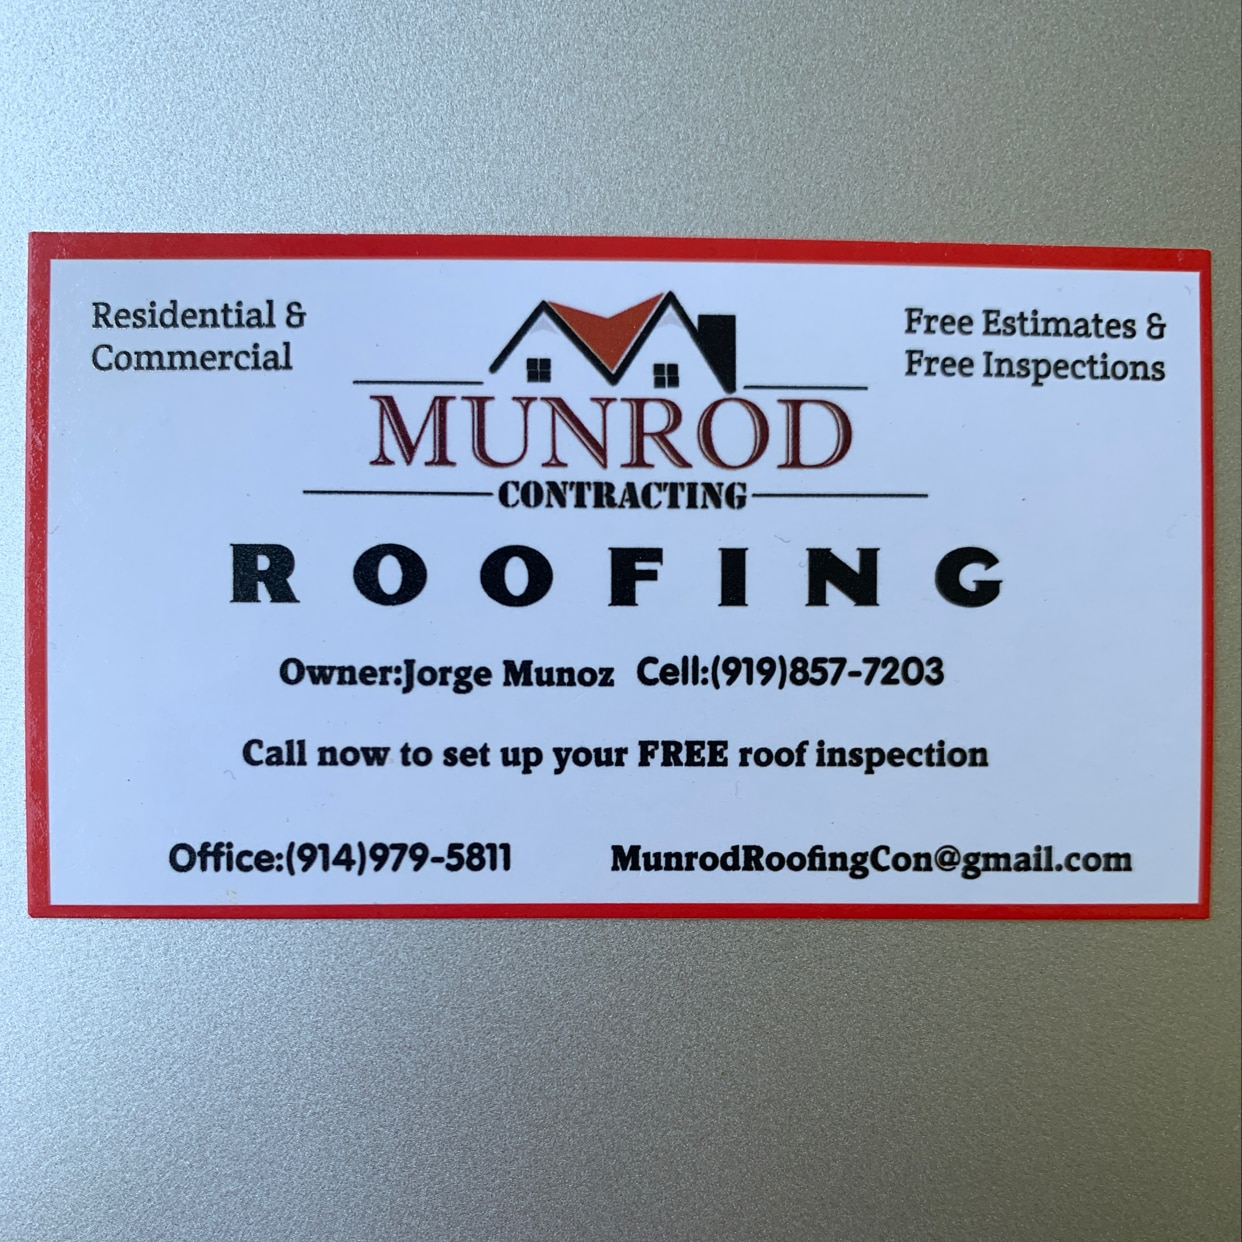 Munrod Contracting & Roofing